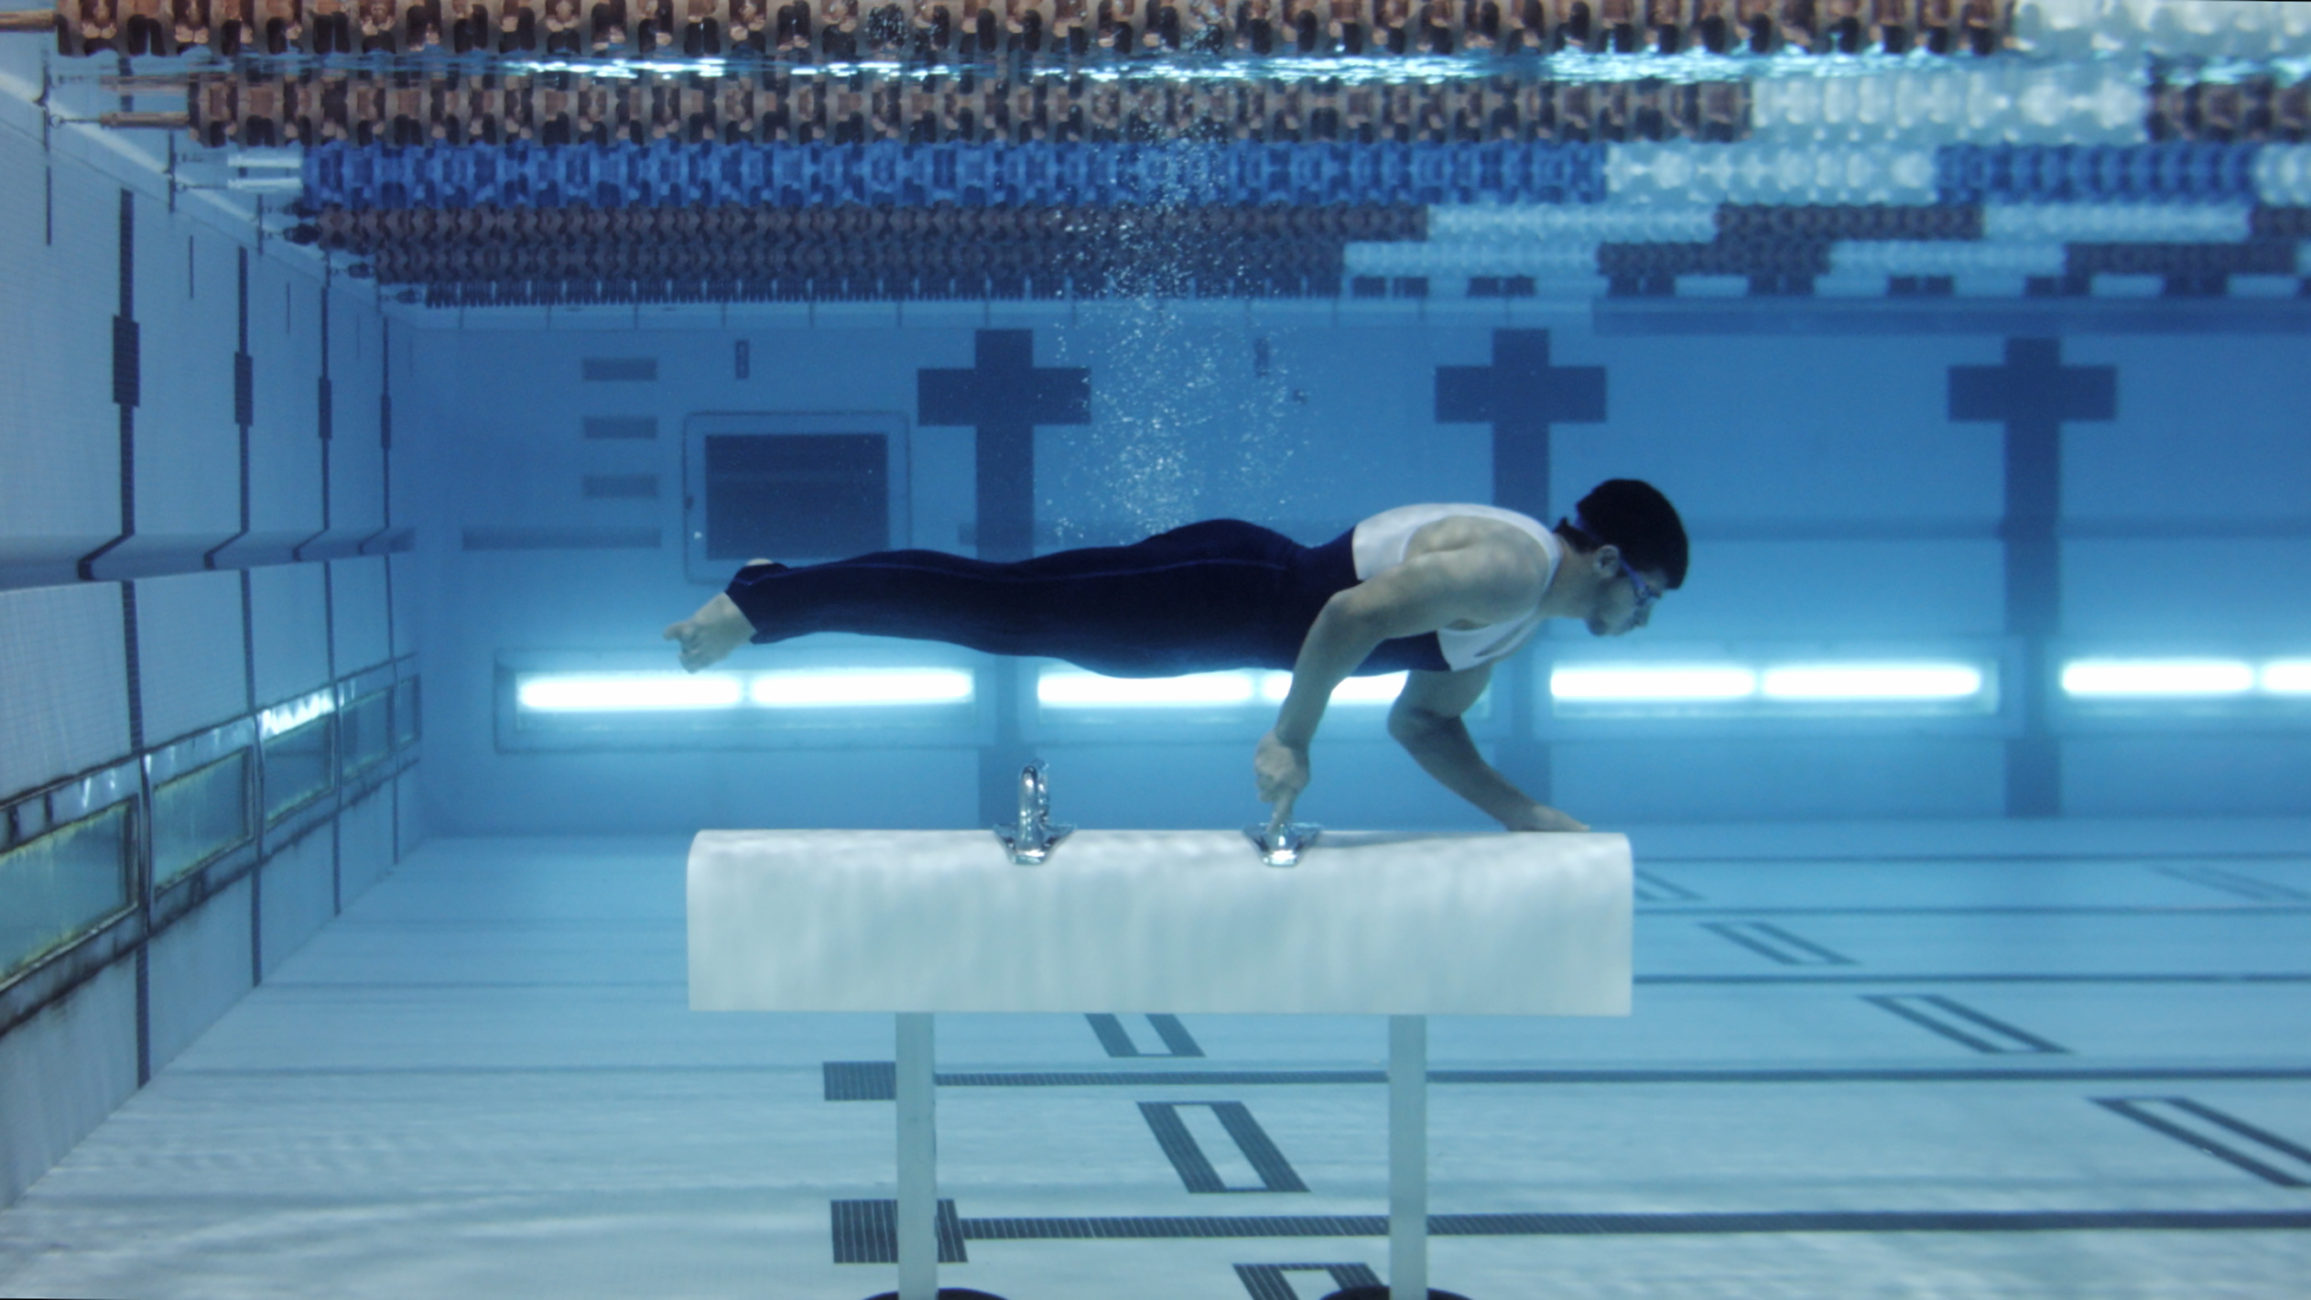 Video still of man underwater in a swimming pool